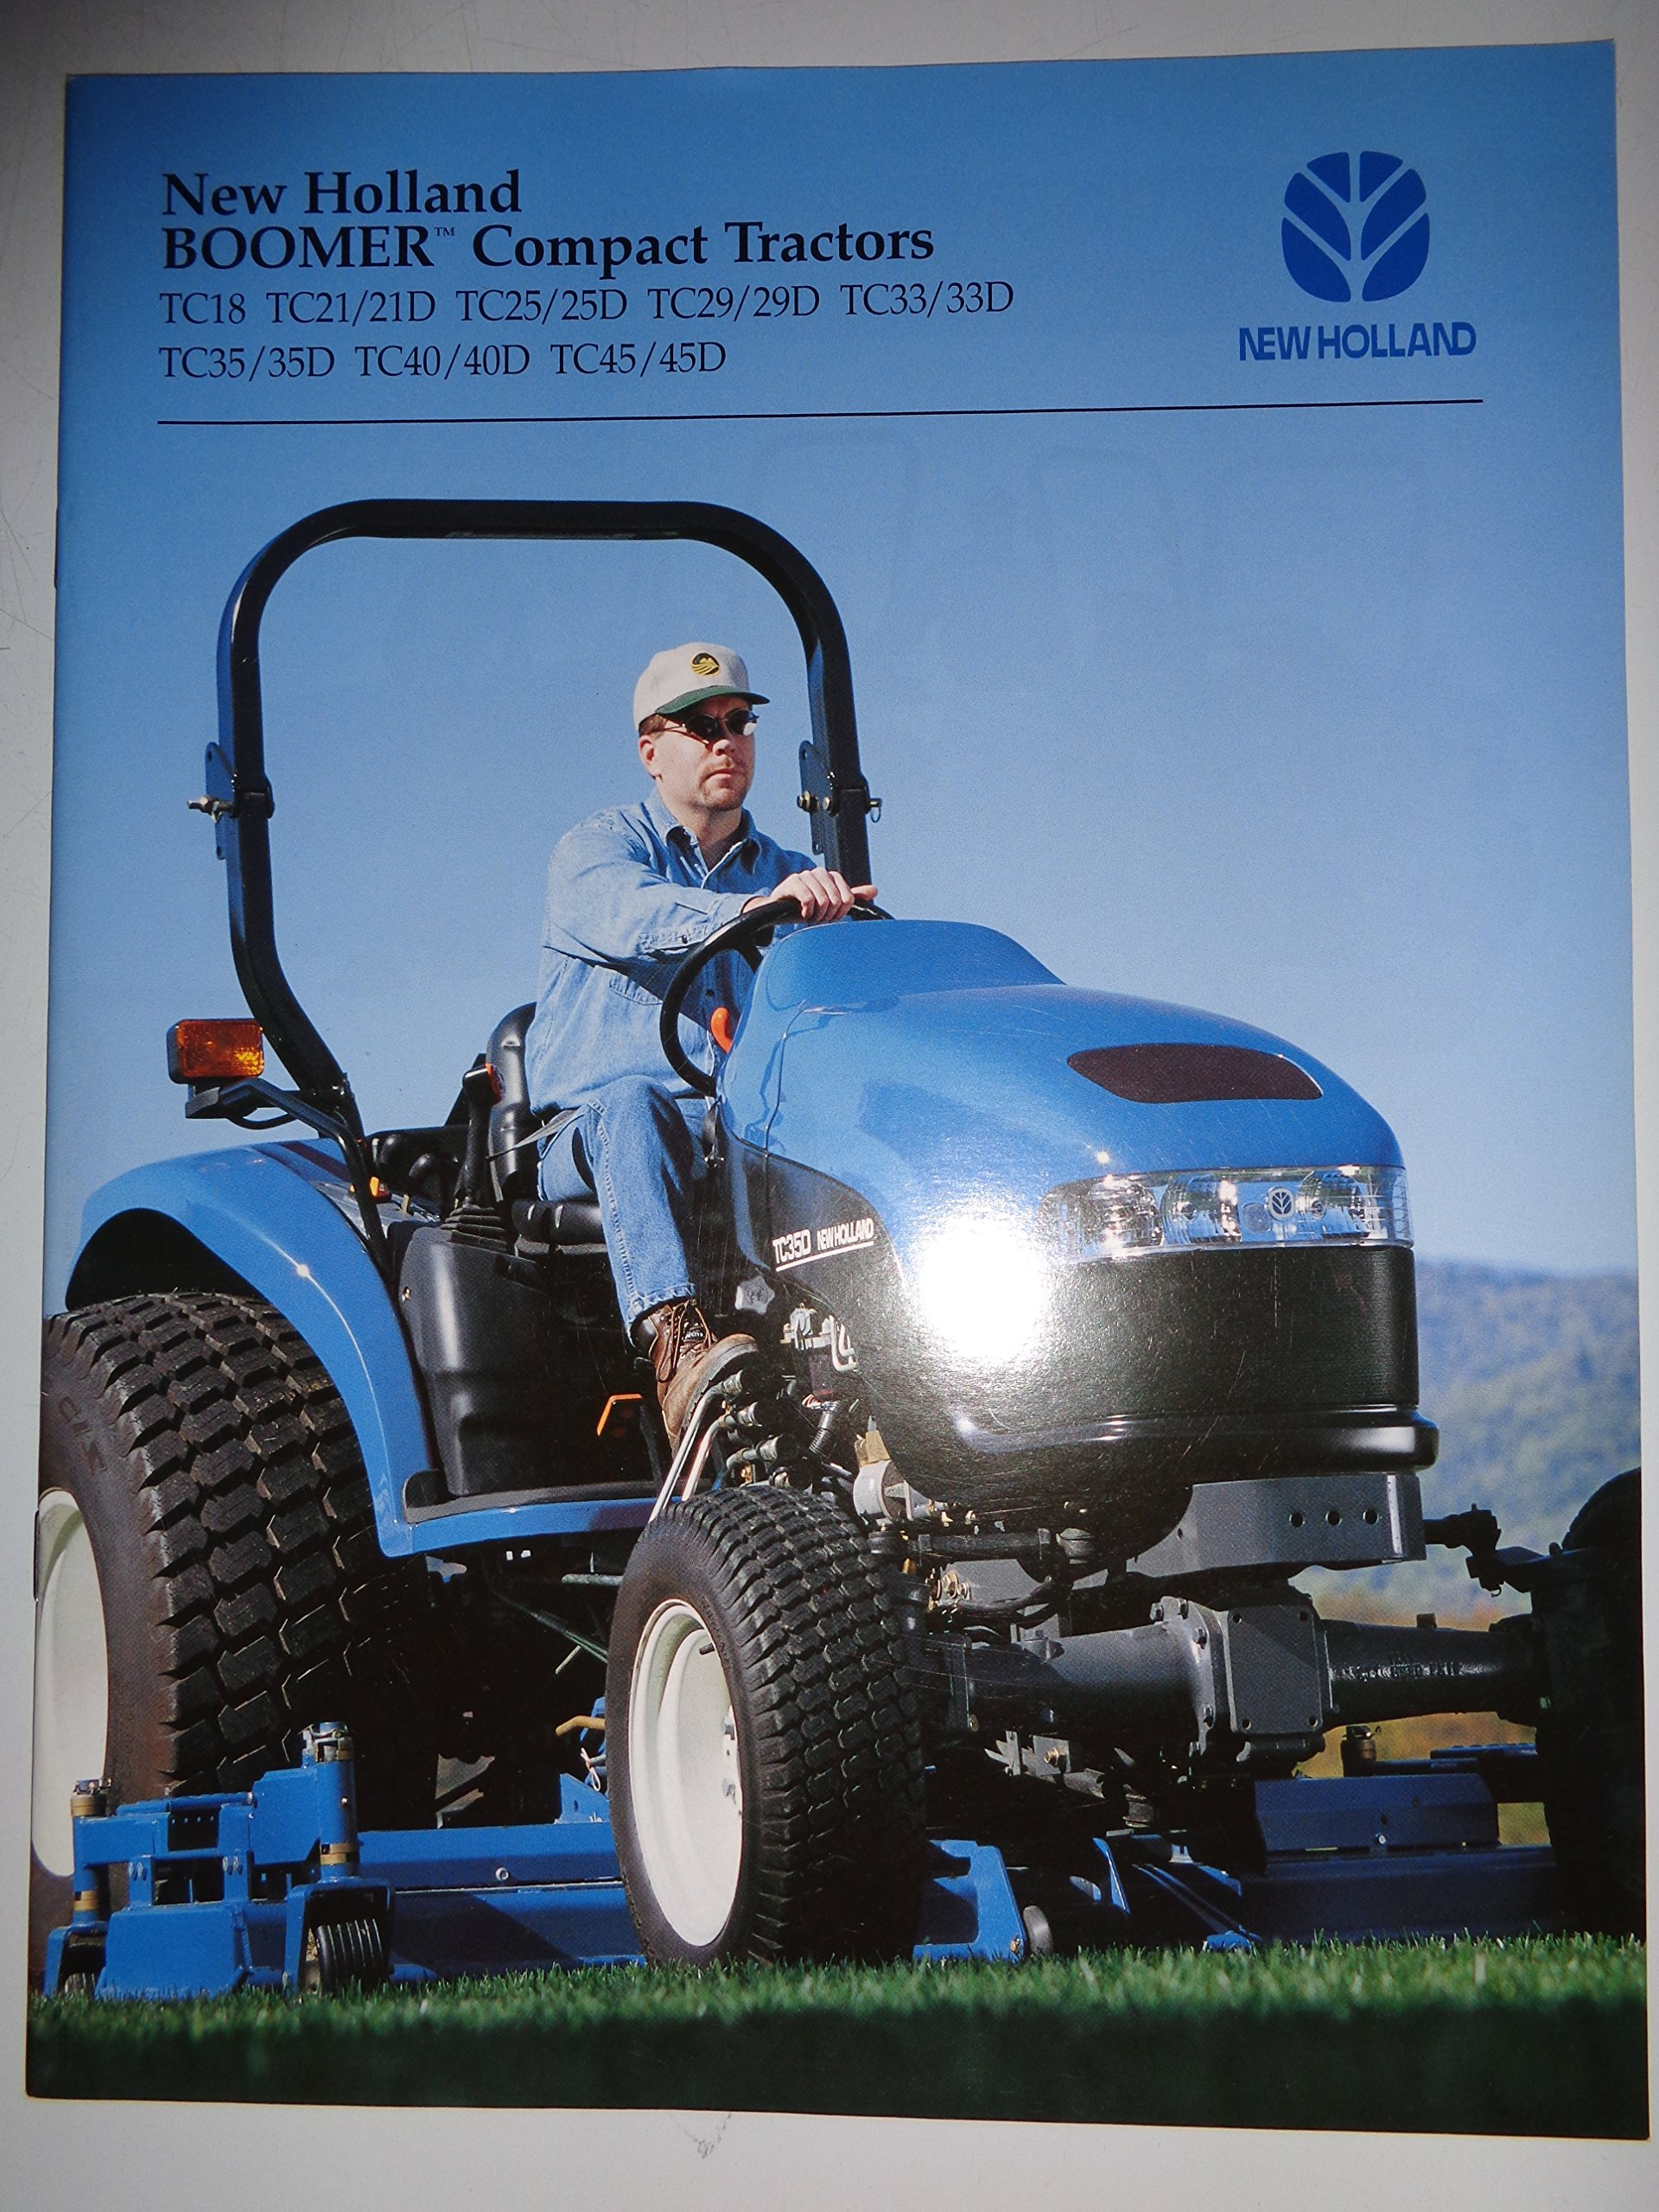 Tc40 New Holland Specifications Tc35 Wiring Diagram Boomer Tractor Sales Brochure Books 1920x2560